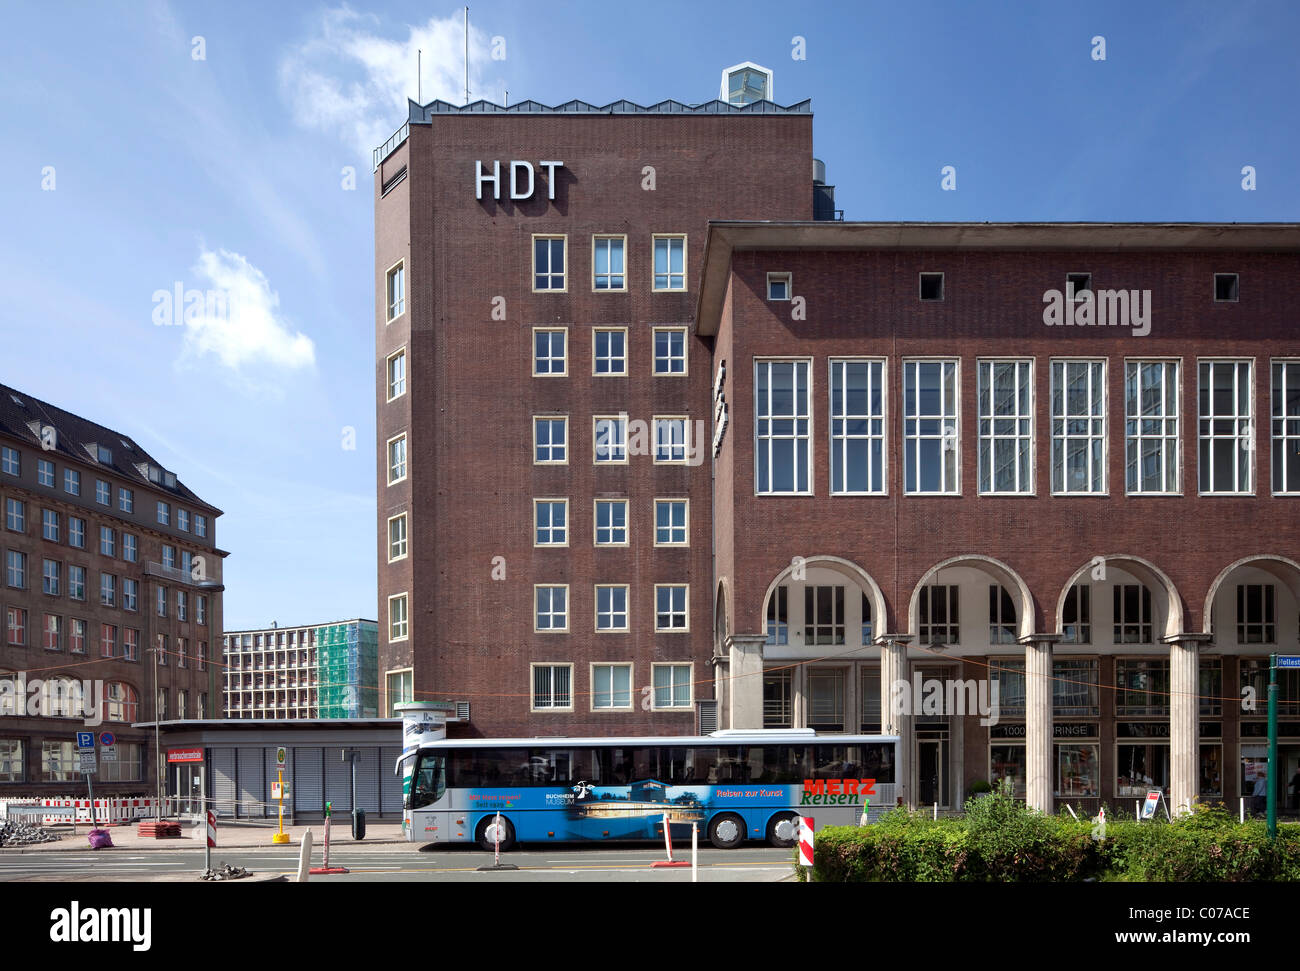 House of Technology or HdT, Institute for Higher Education, expressionism, Essen, Ruhrgebiet region, North Rhine - Stock Image